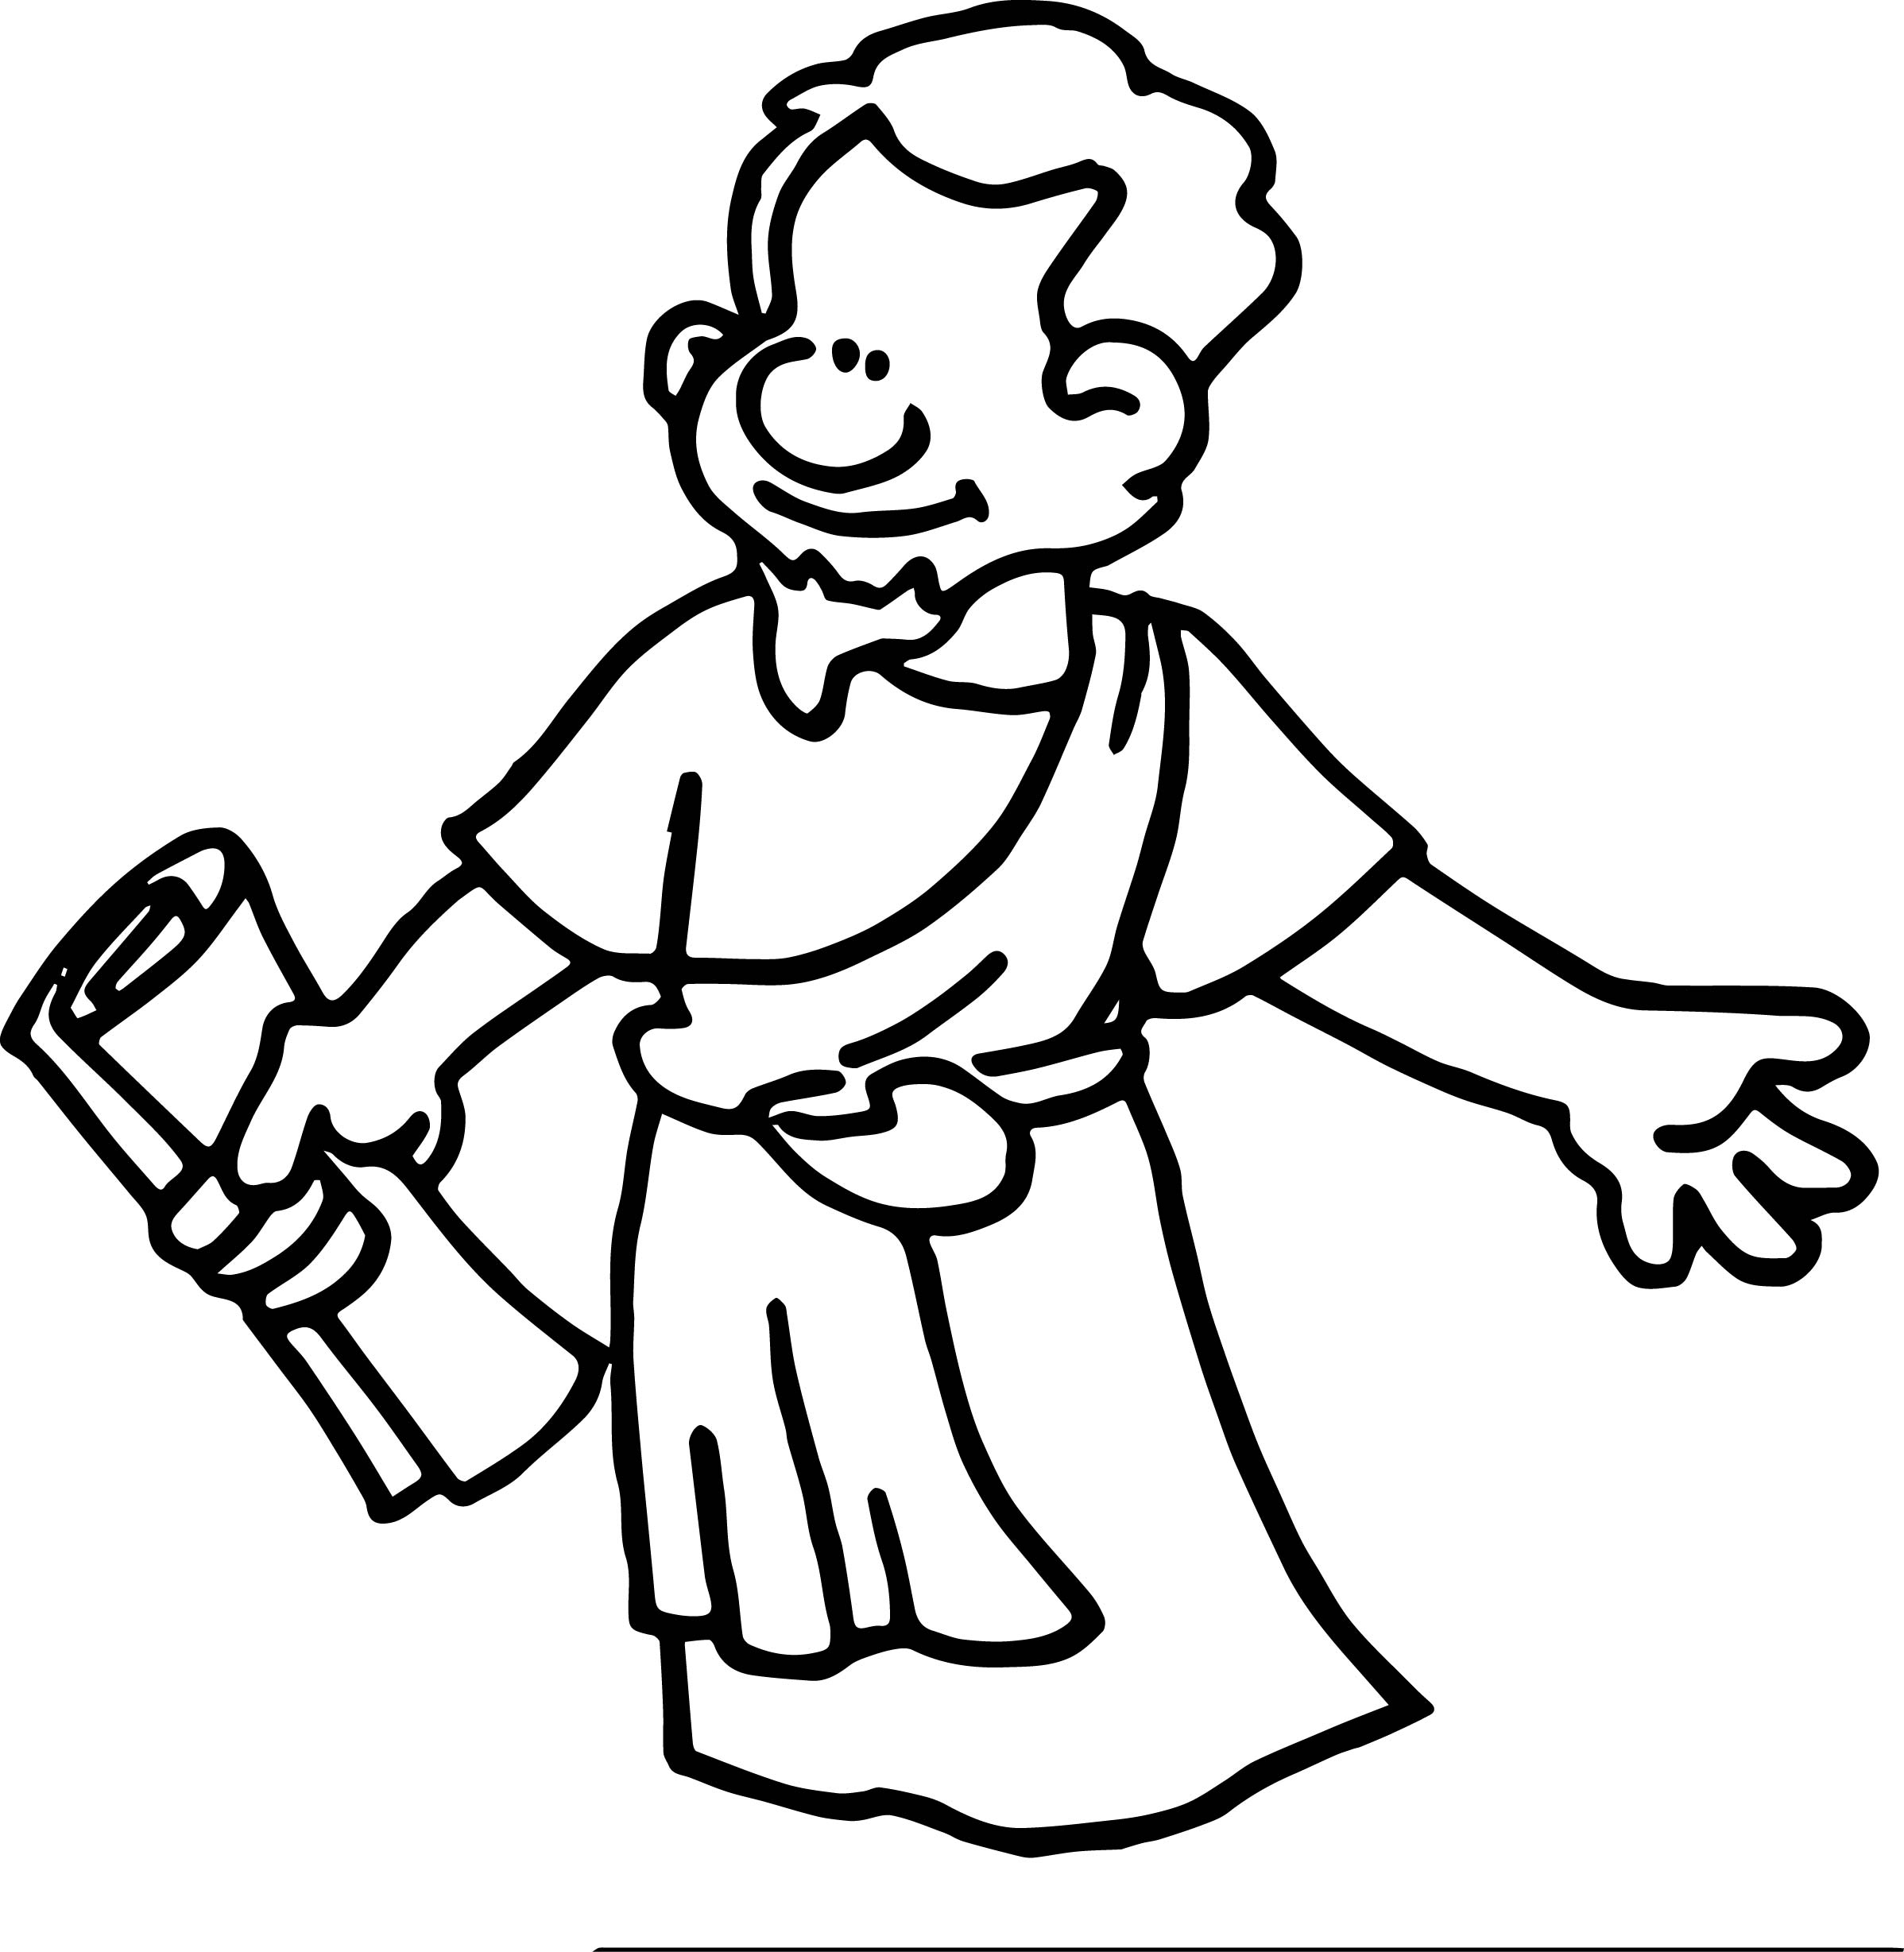 Apostle paper coloring page for Apostle paul coloring page